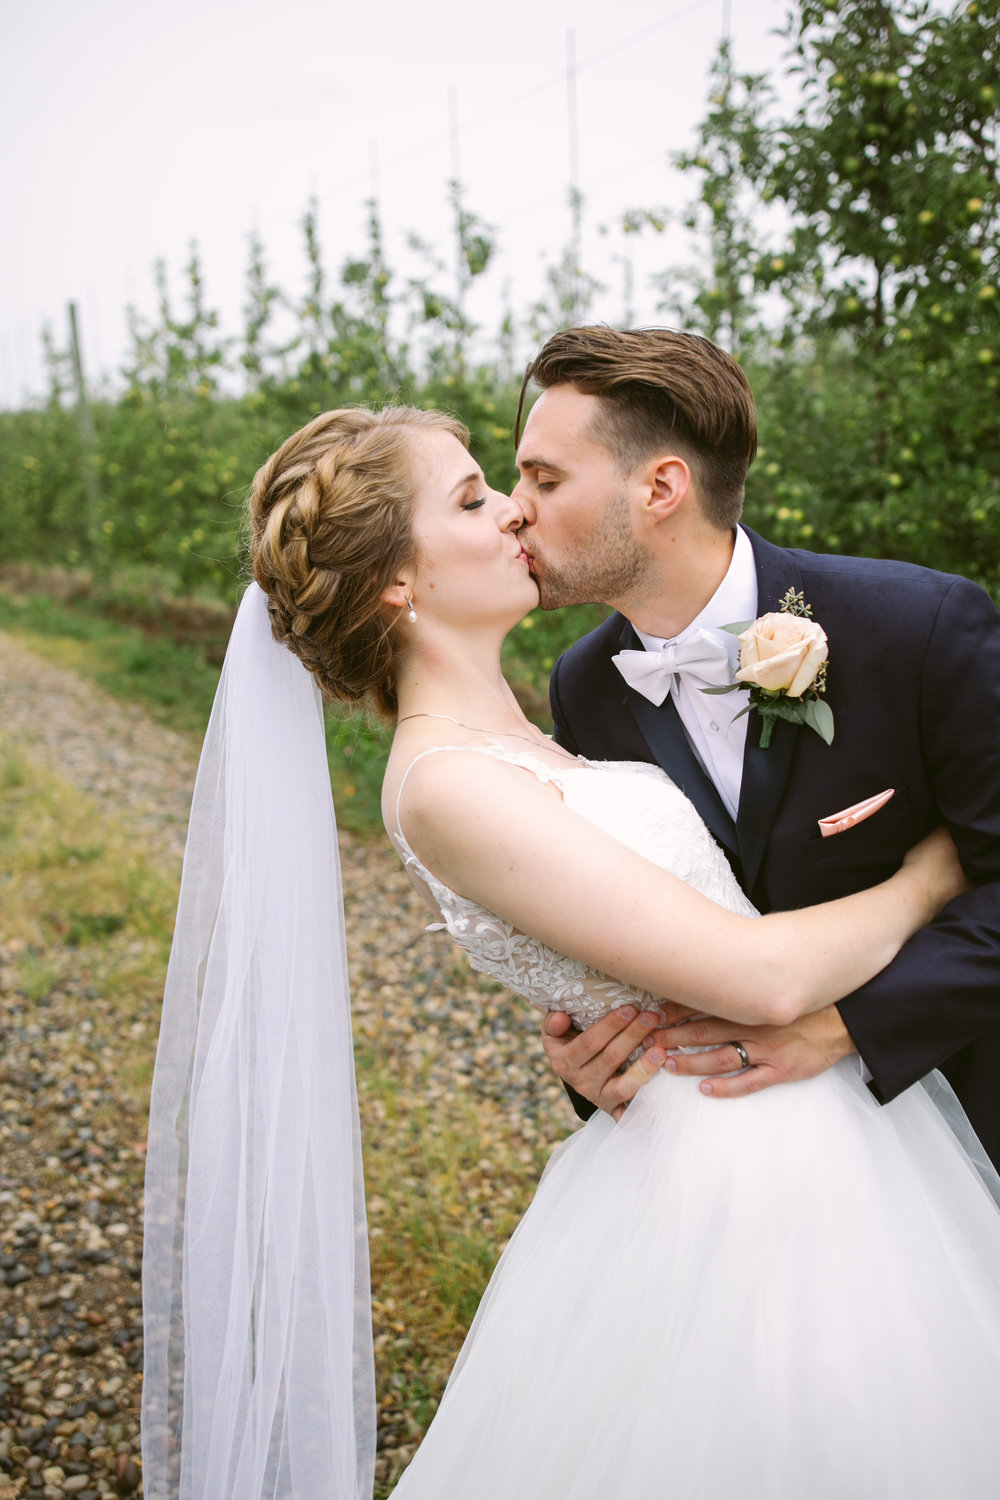 grandrapidswedding_grandrapids_grandrapidsweddingphotographer_countrywedding_orchardwedding_rainyweddingday_rain_summerwedding_grandrapidsphotographer_luna_lunawedding_jessicadarling_jdarlingphoto_ericaandaj027.jpg